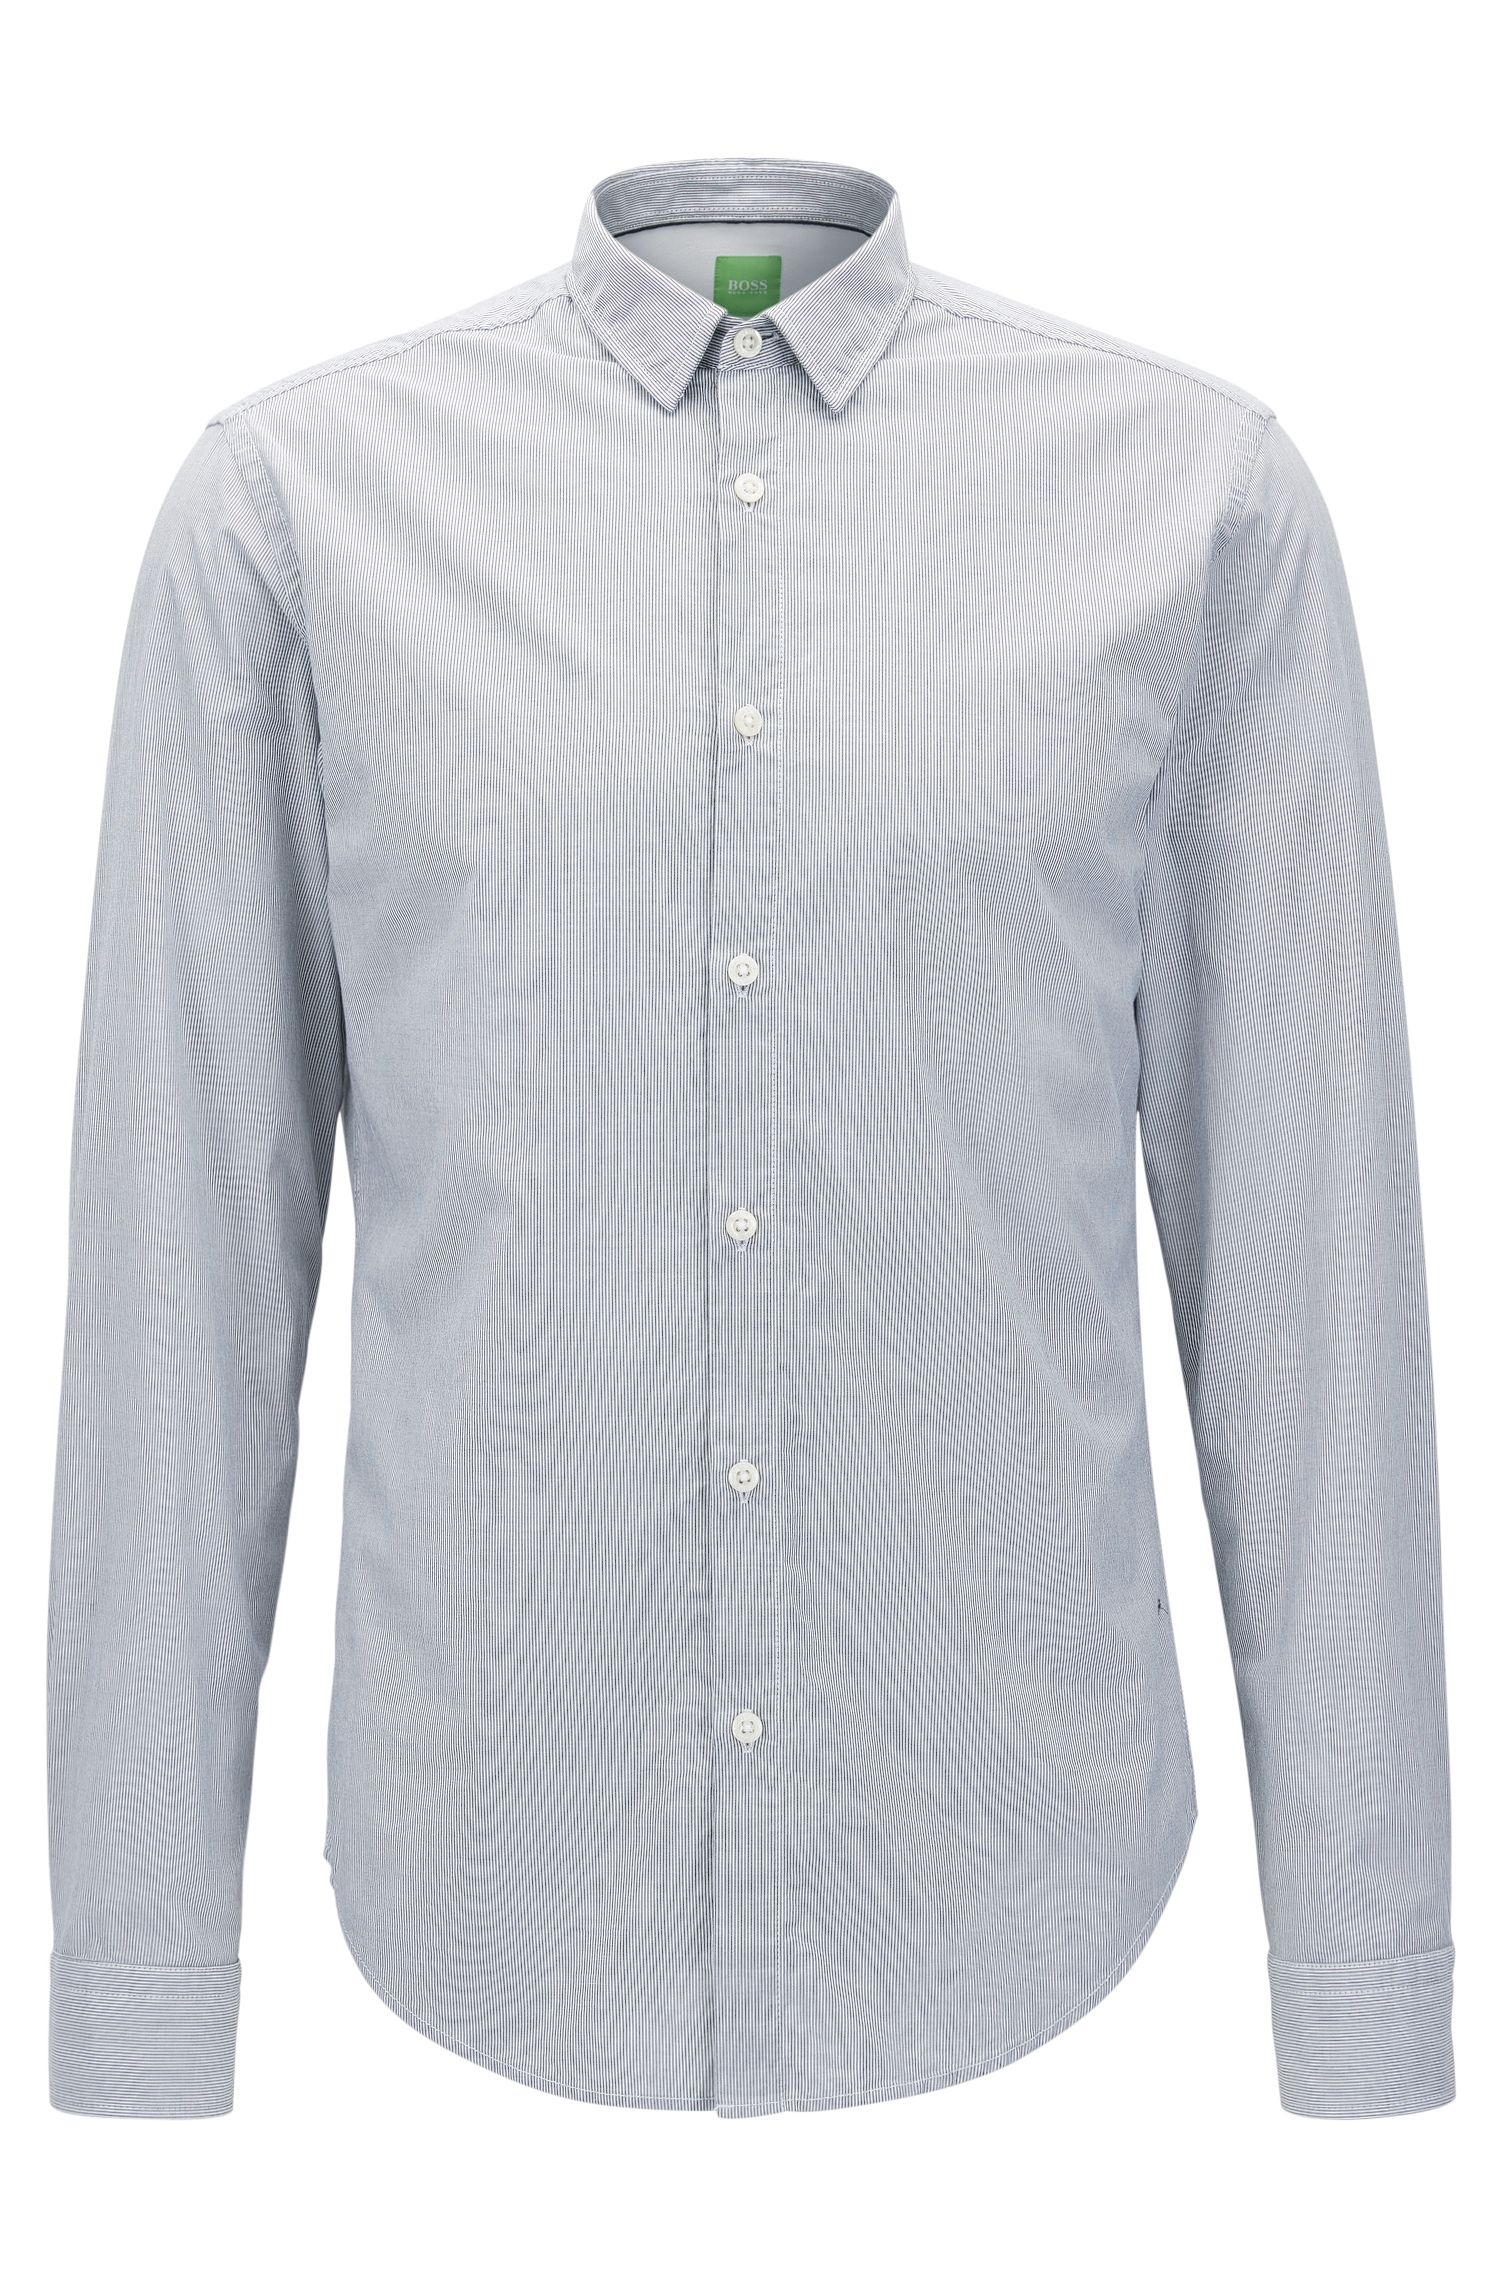 Finely striped peached cotton shirt in a regular fit